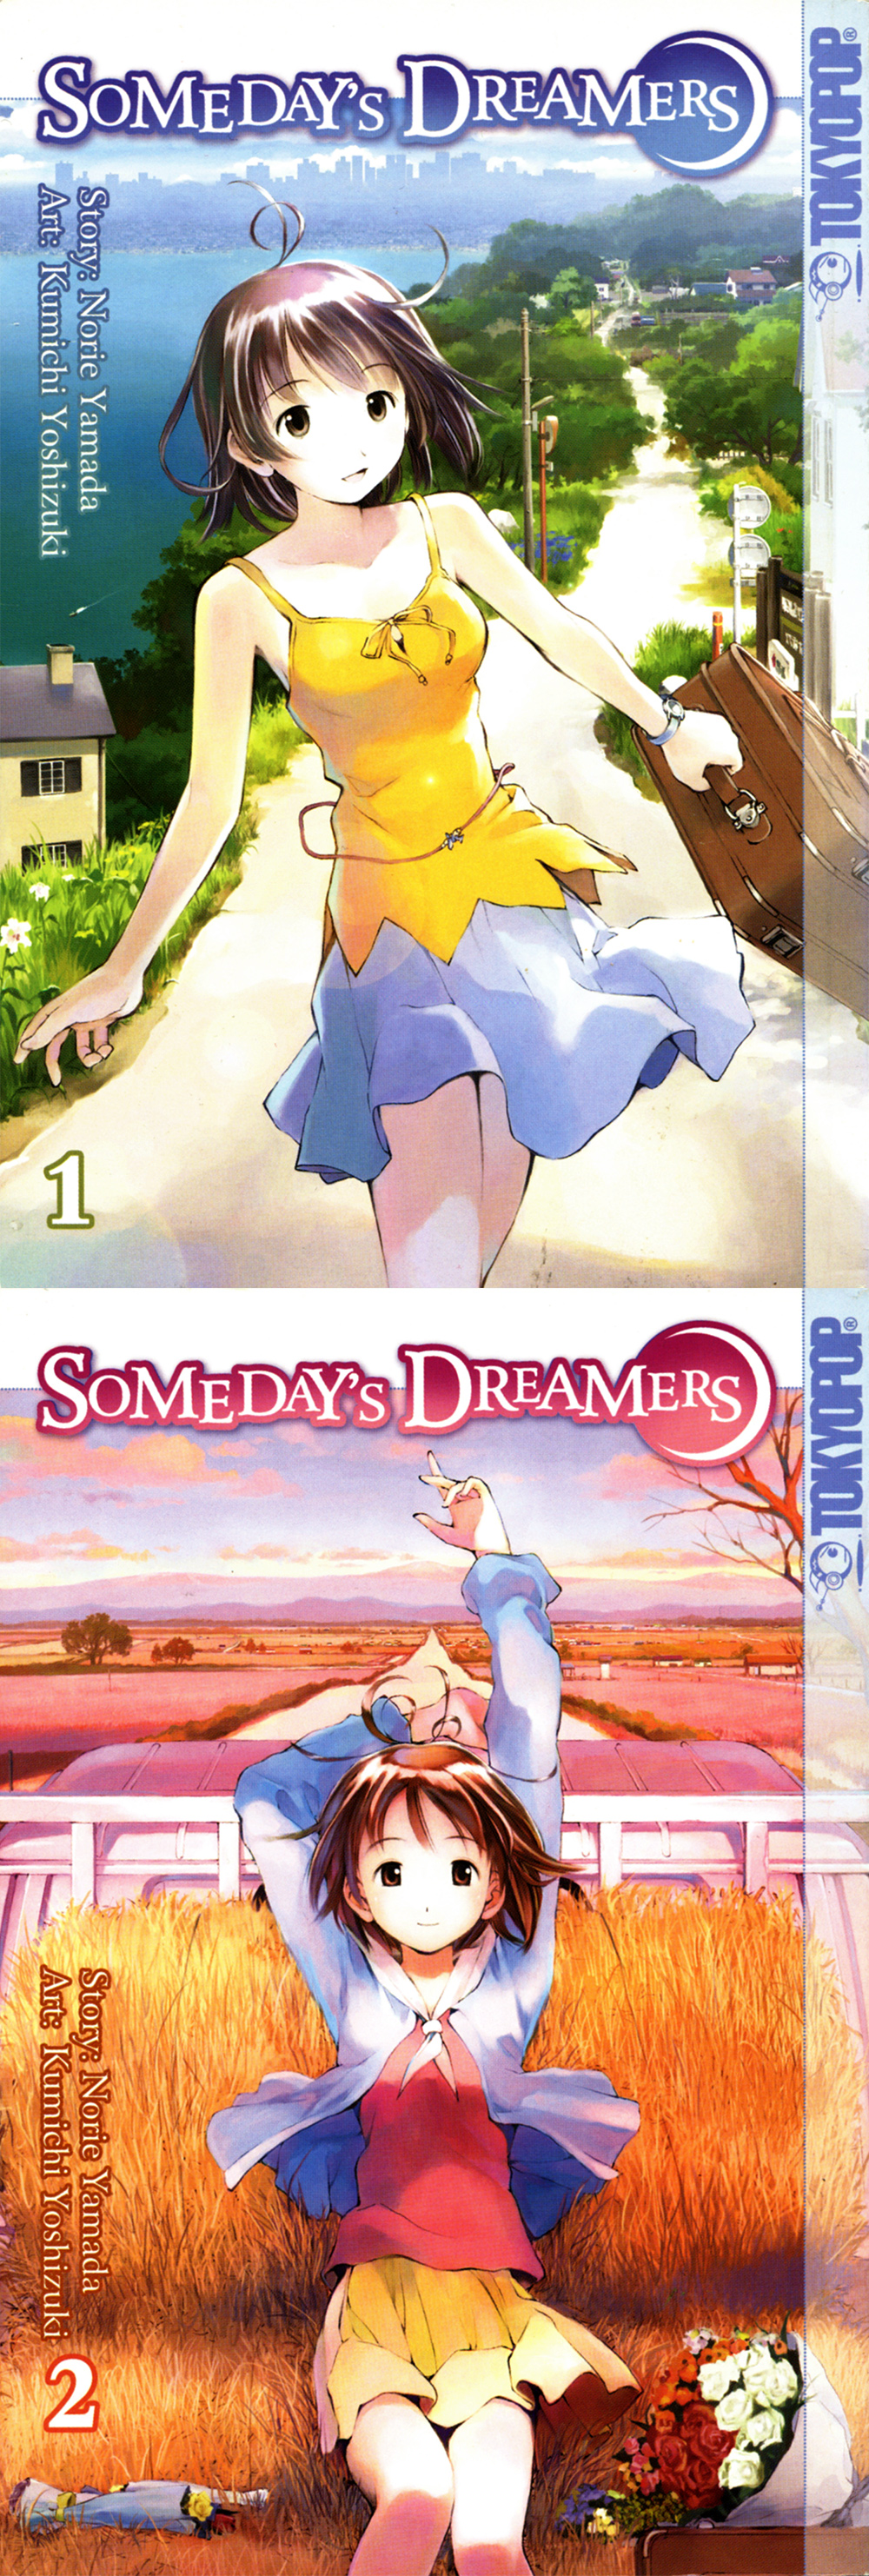 """Someday's Dreamers"" volumes 1-2 manga by Norie Yamada and Kumichi Yoshizuki."